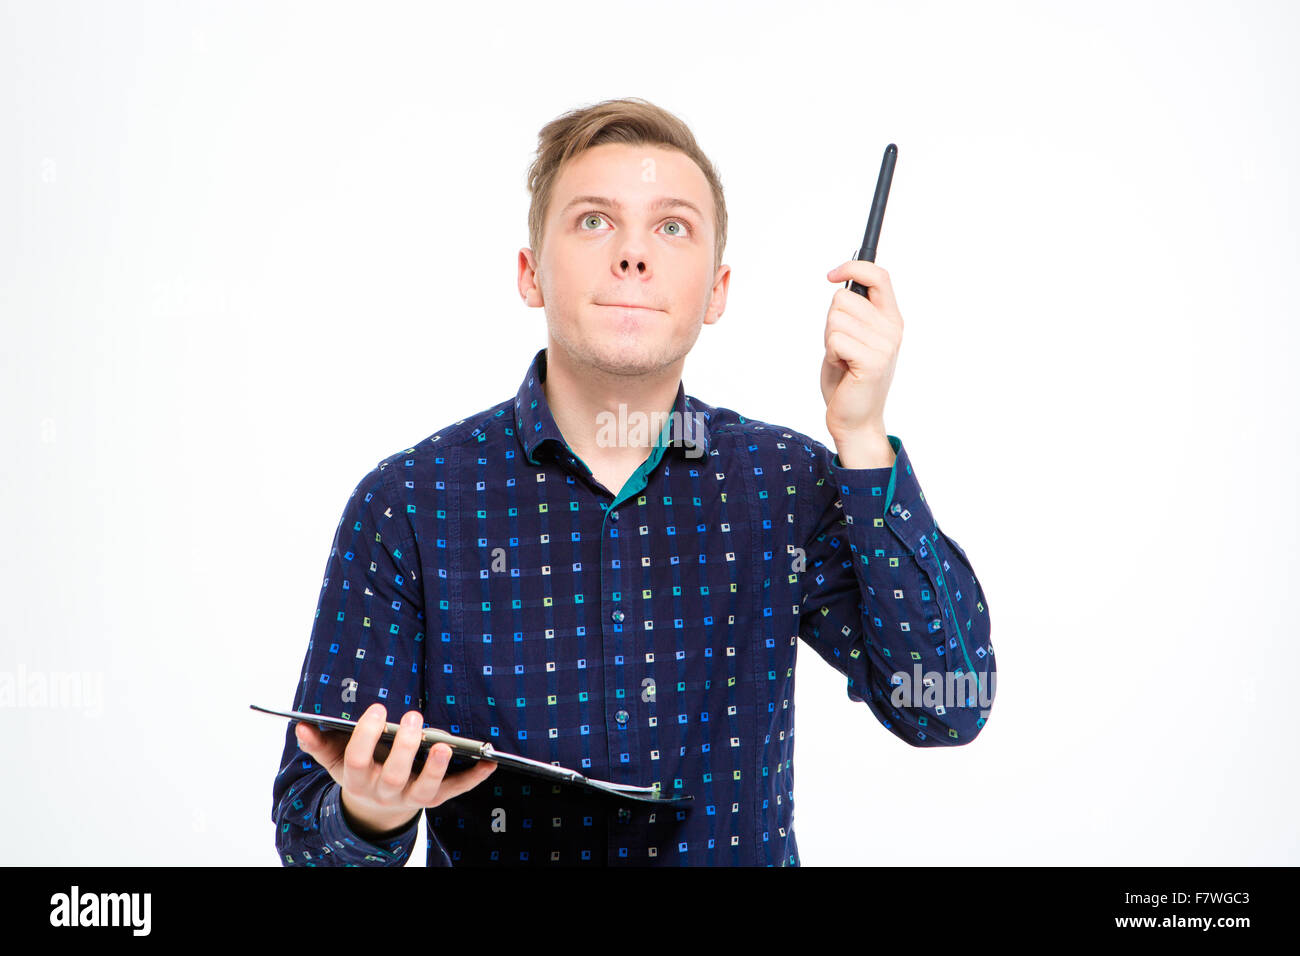 Concentrated handsome young man in checkered shirt holding clipboard and pointing up by pen over white background - Stock Image